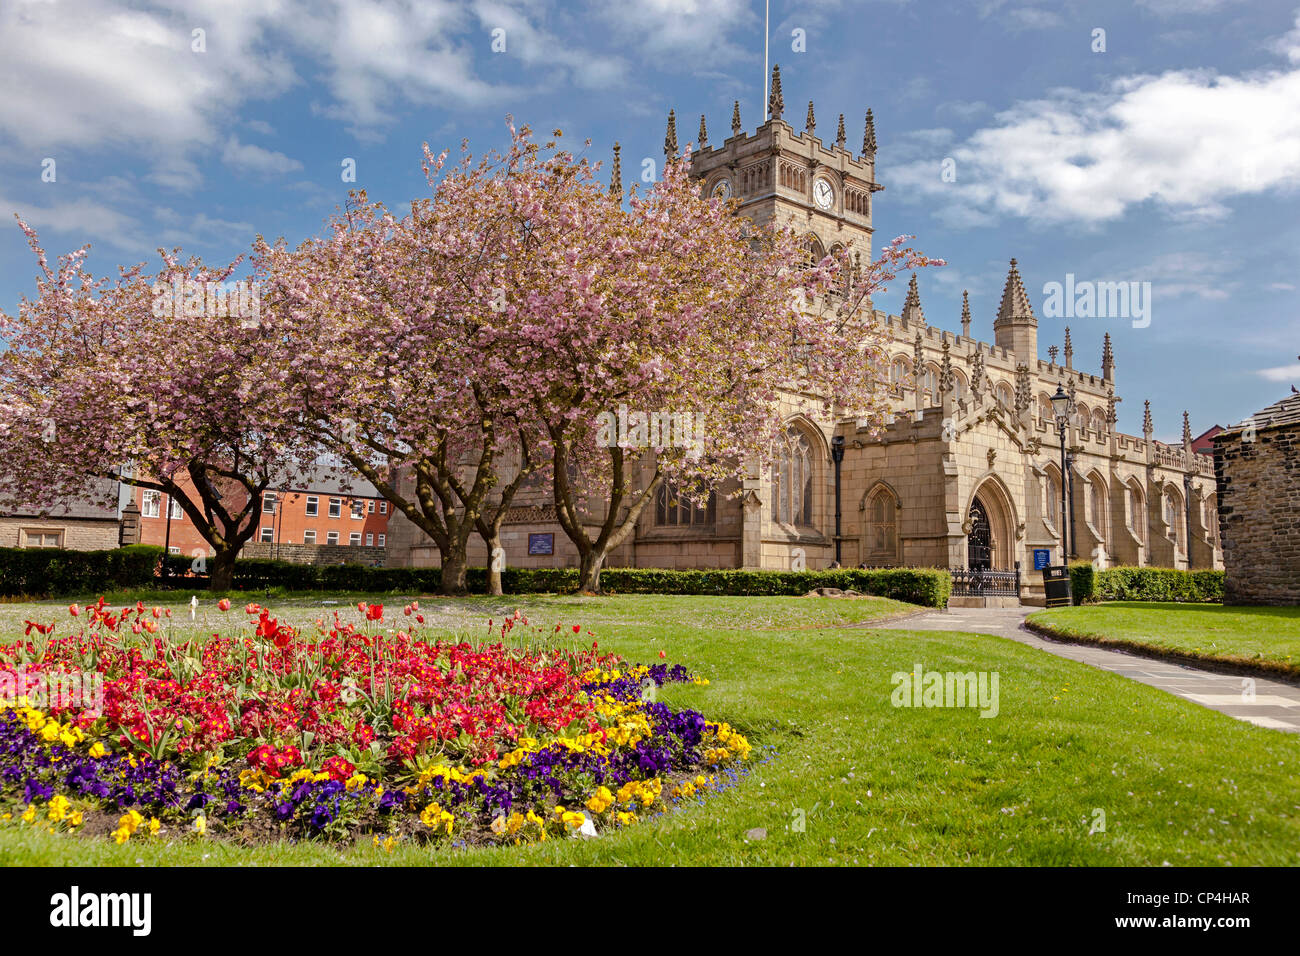 The Parish Church of All Saints Wigan. In the centre of the town. - Stock Image